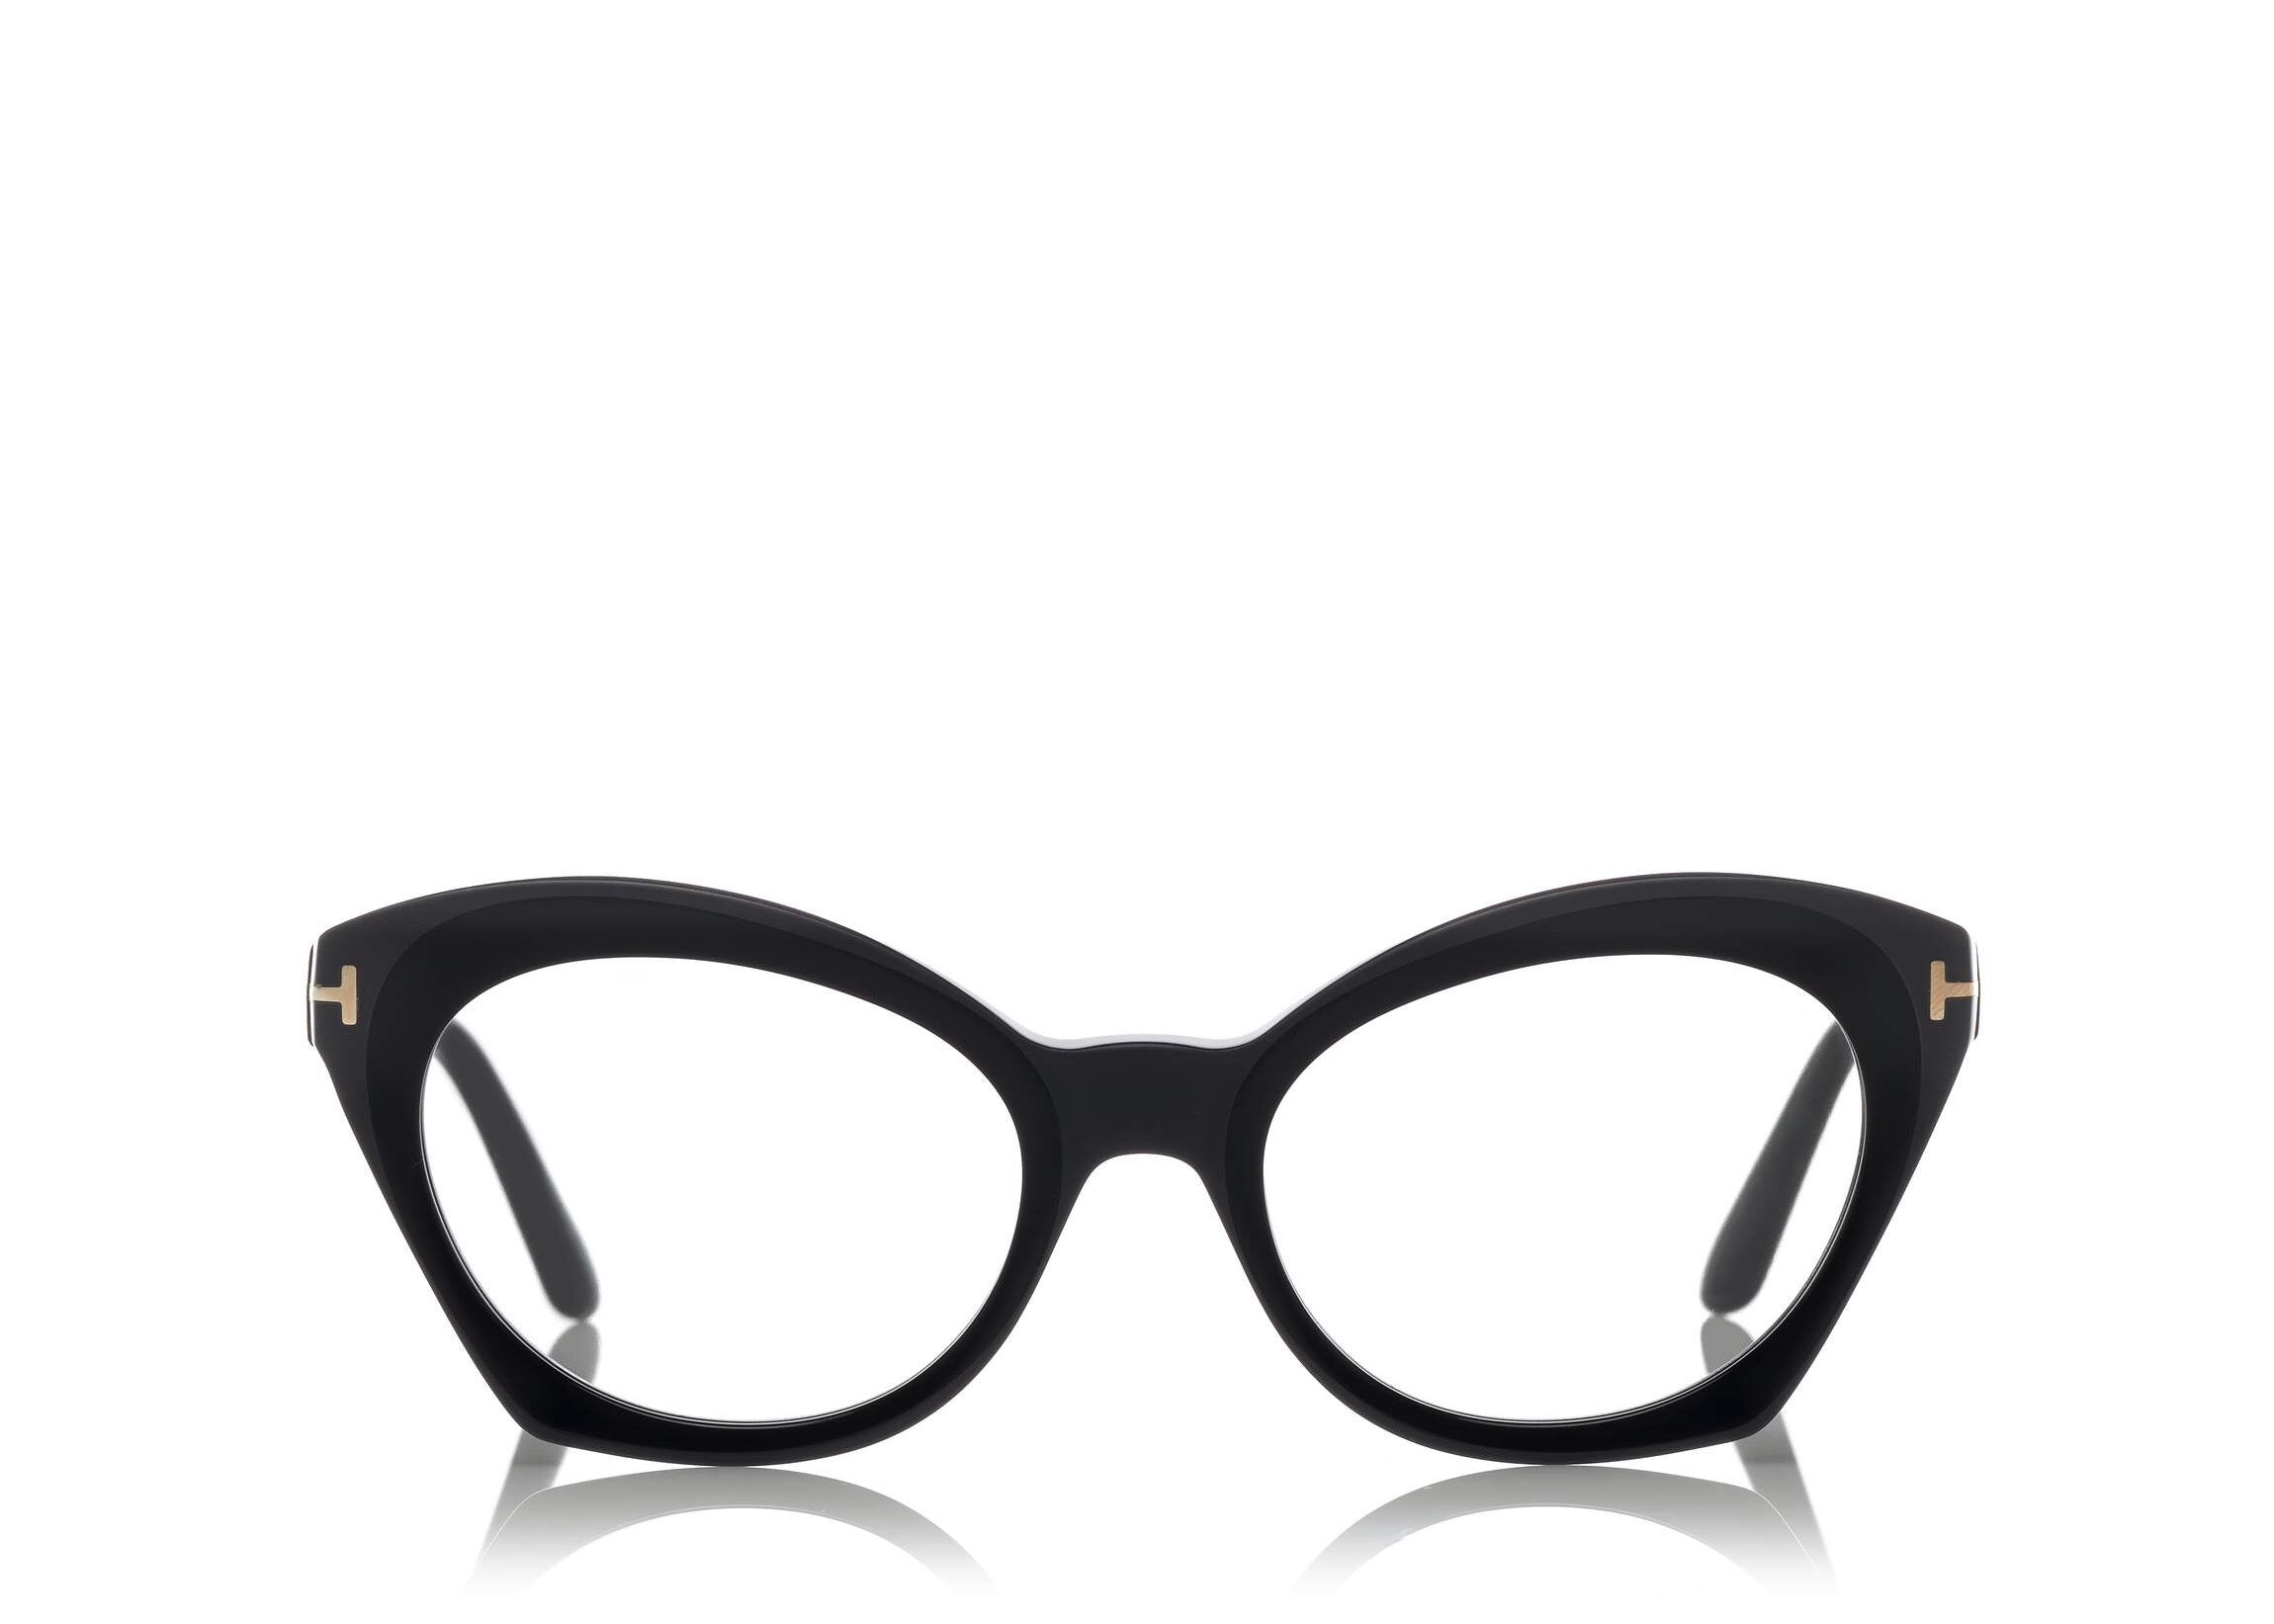 adc10915720 6468985963 TOM FORD FT 5456 BLACK CAT-EYE FRAME OPTICAL GLASSES ...